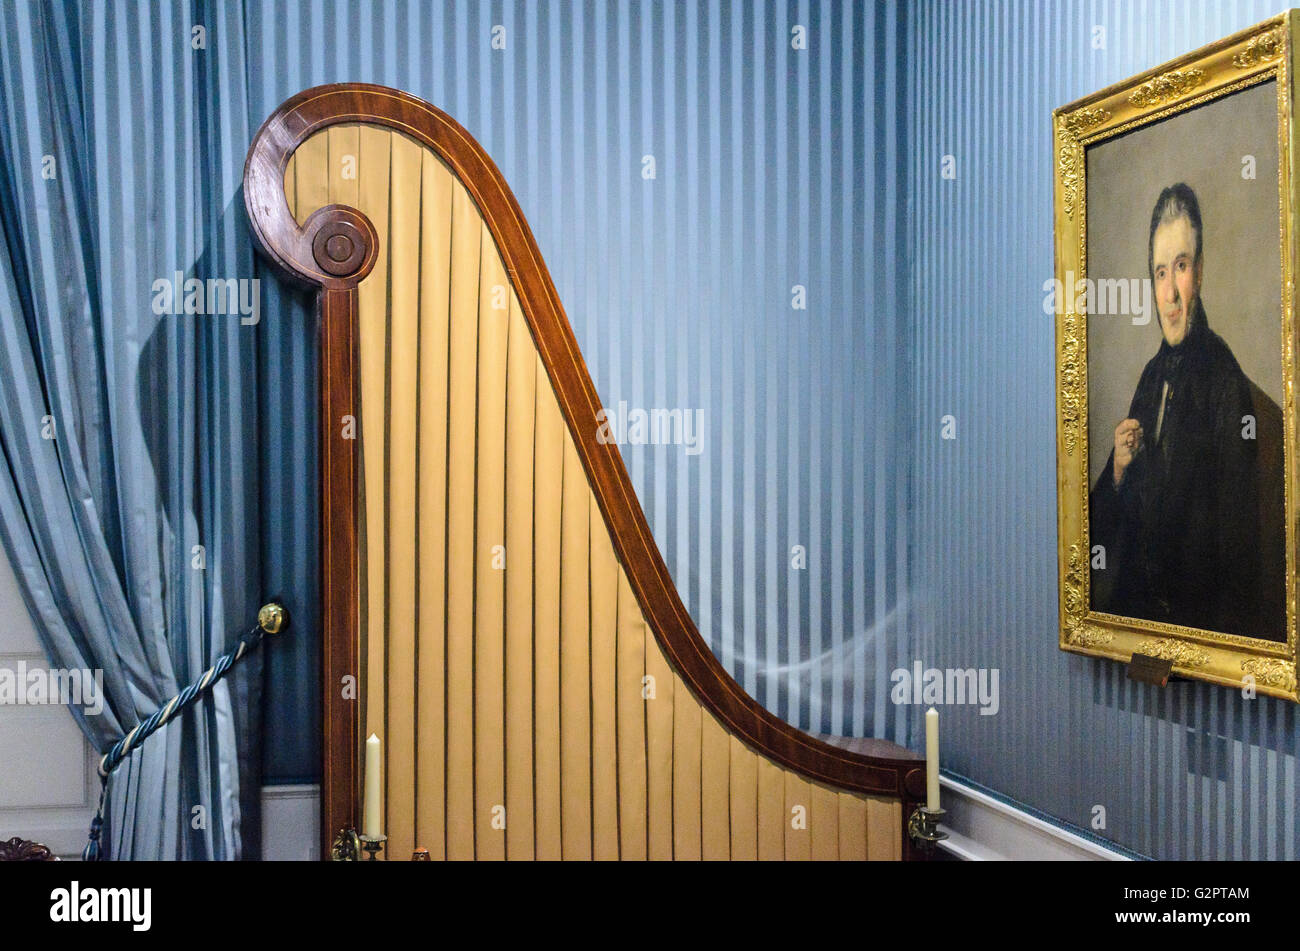 Madrid, Spain, 2nd June 2016.  Indoors view of the Romanticism Museum in Madrid, Spain. Enrique Davó/Alamy - Stock Image